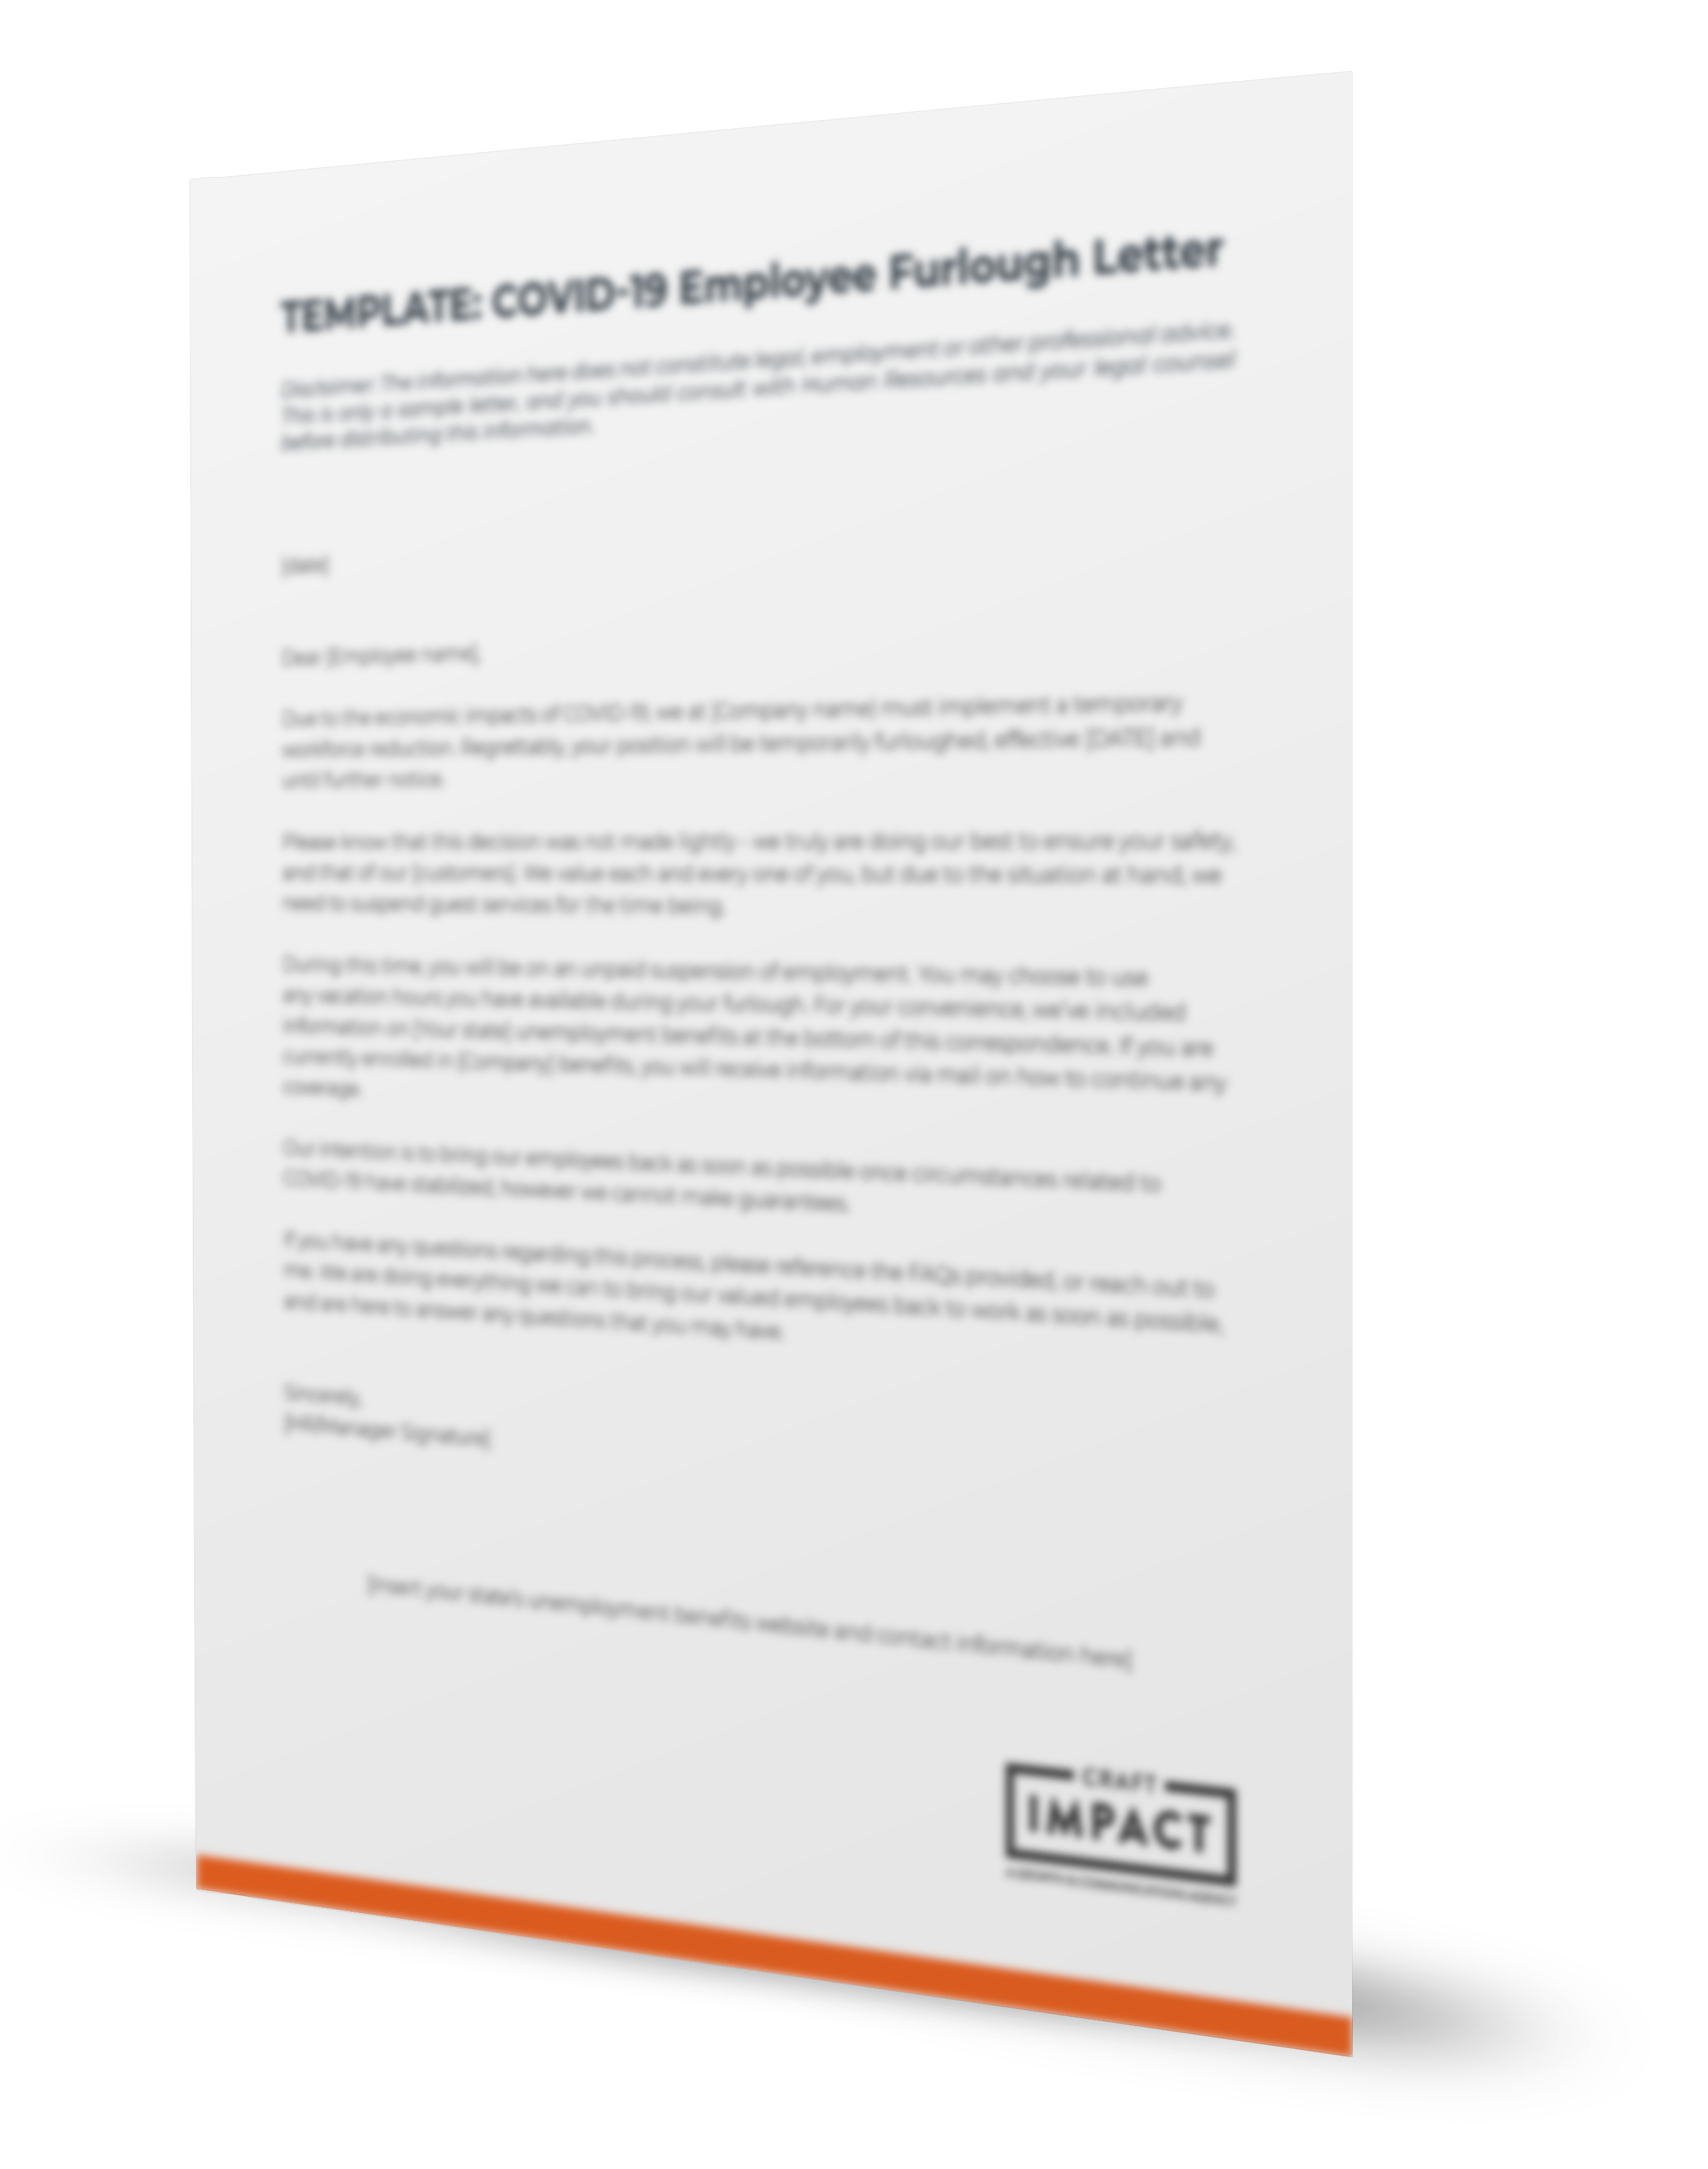 employee-furlough-letter-and-faqs-template-preview